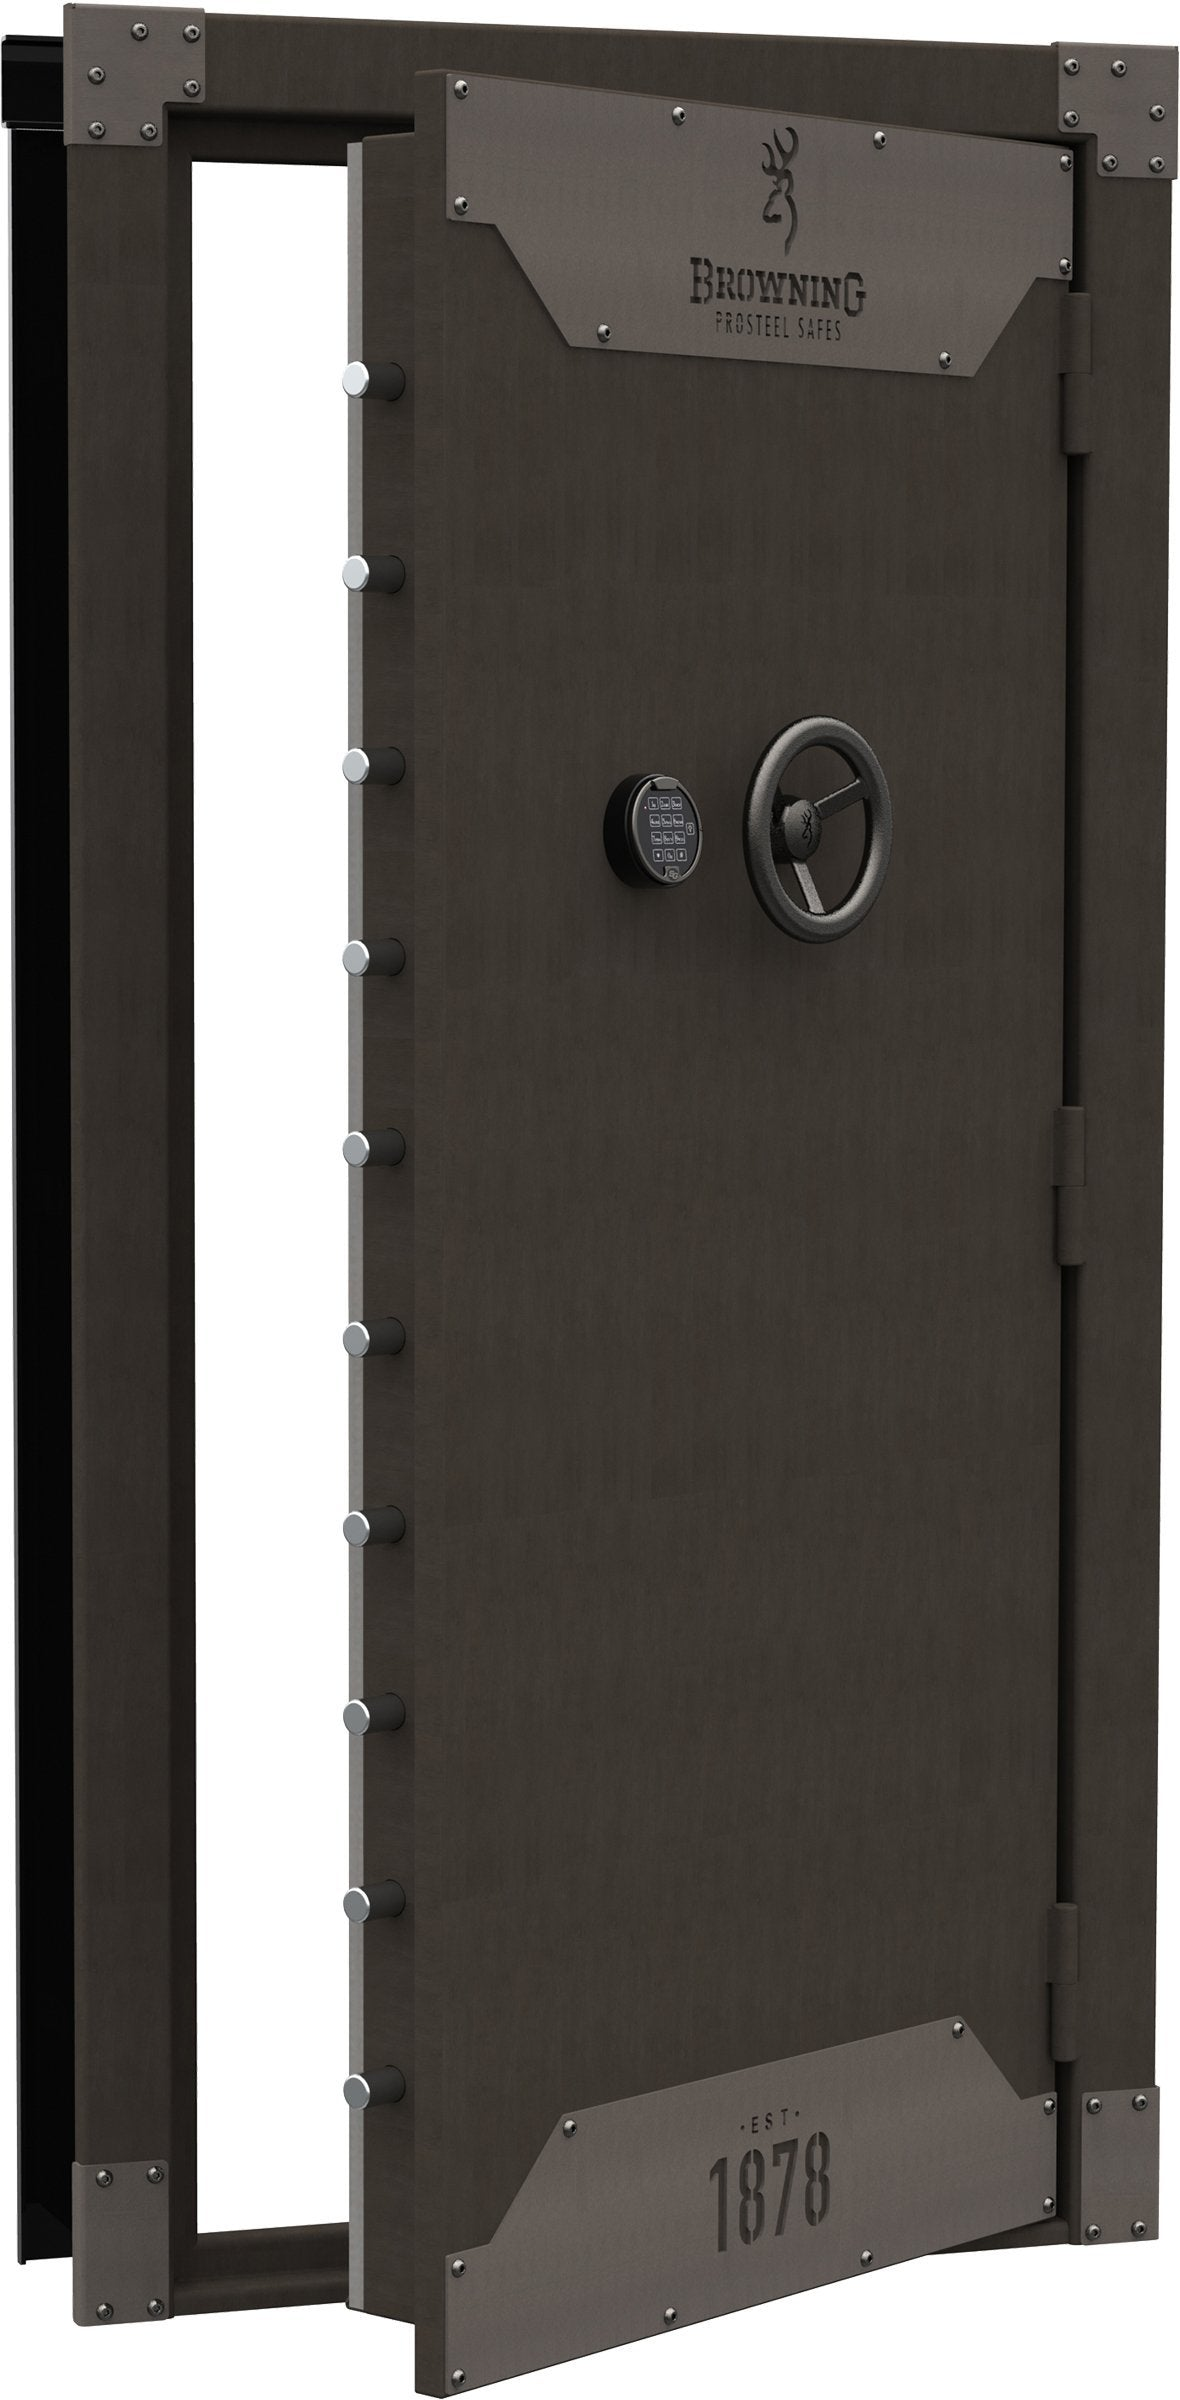 Vault Doors For Panic Rooms & Walk-In Safes - Browning 1878 Clamshell Vault Door Metal Glaze - Outswing - 1601100339